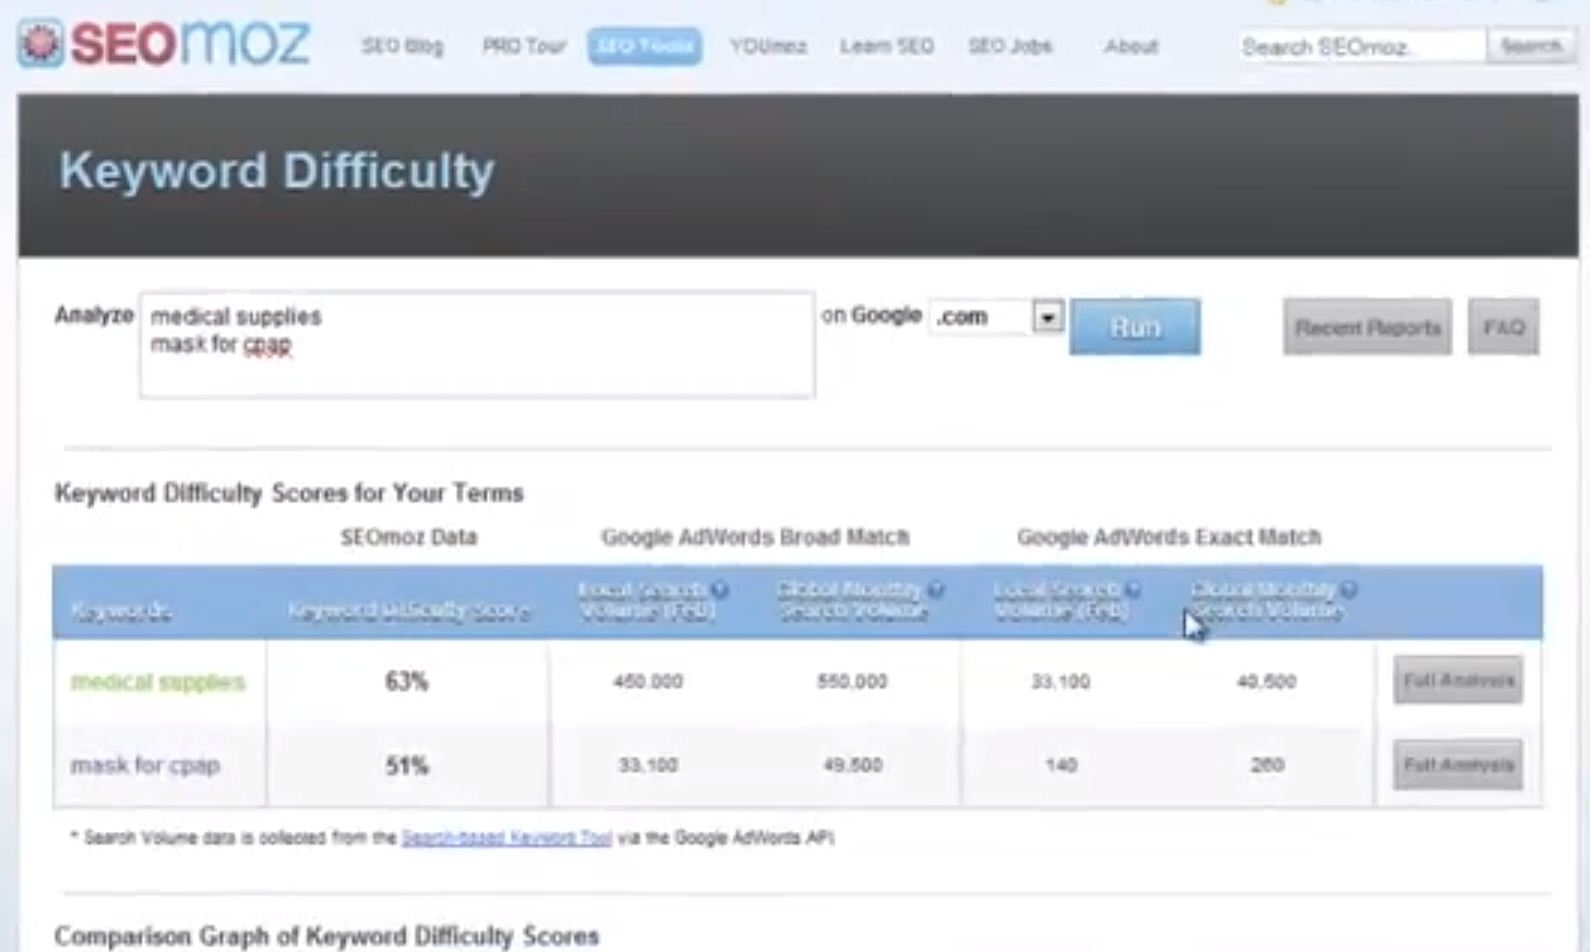 Users can analyze the difficulty of multiple keywords simultaneously and compare them